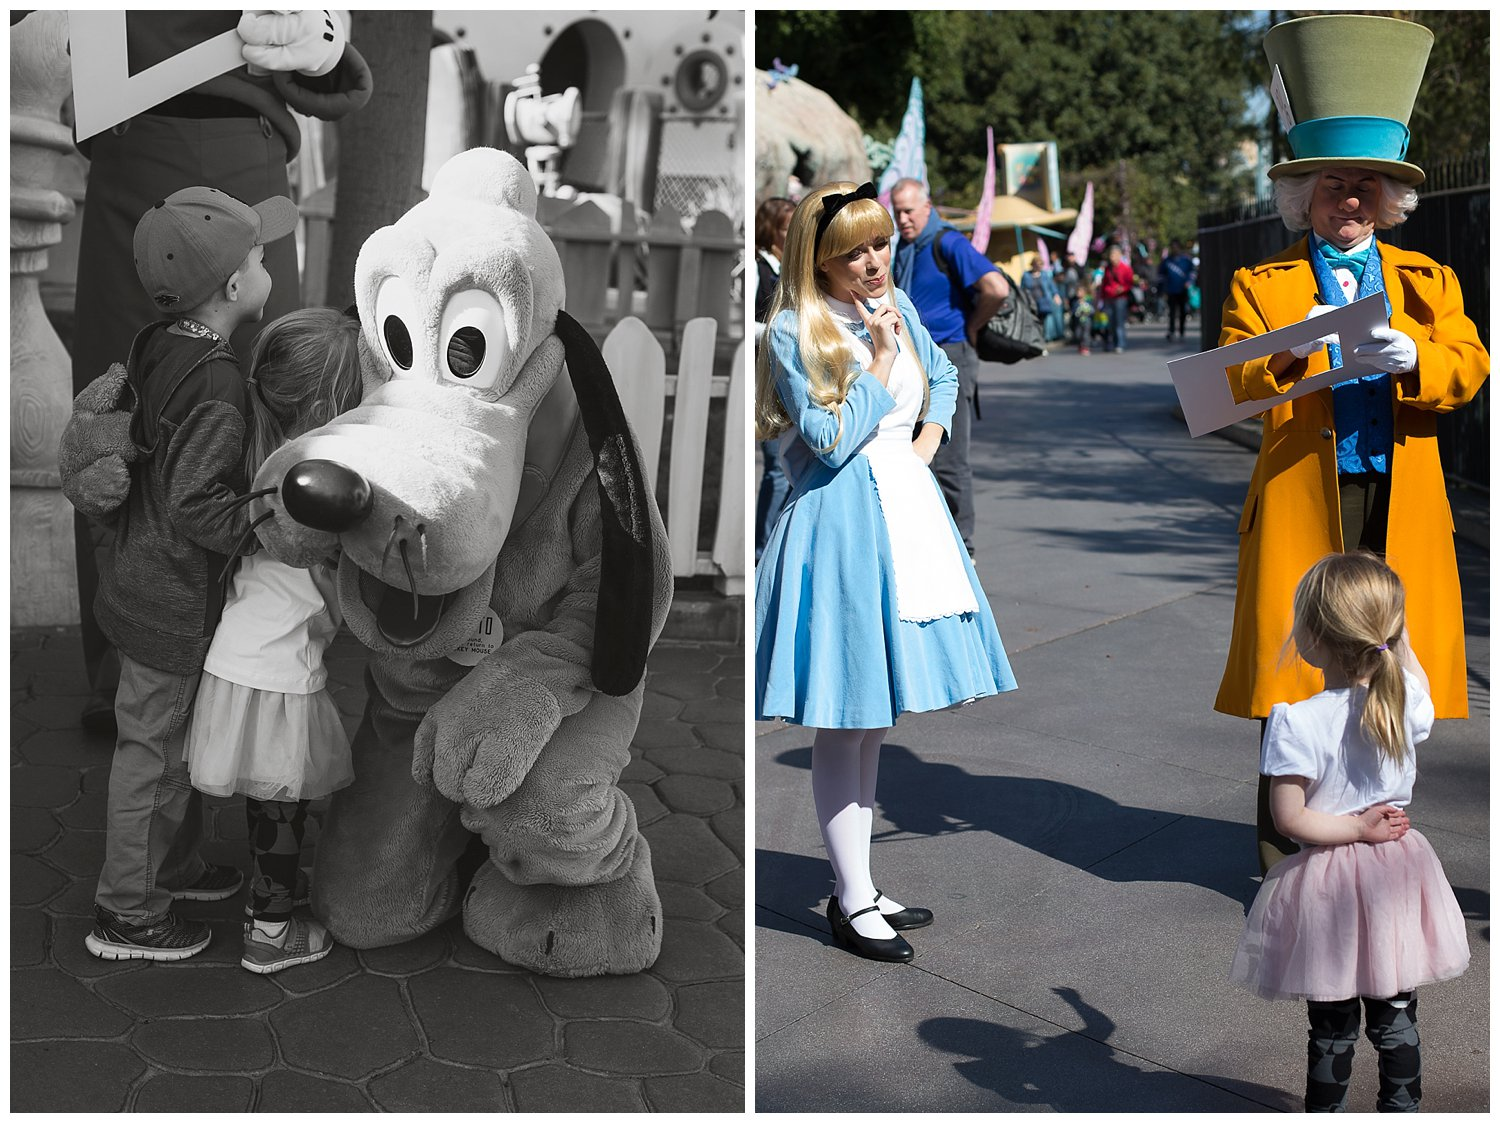 We spent a lot of our Disney time getting autographs from all the characters! Alice and the mad hatter were SO into their characters! They were Amazing!